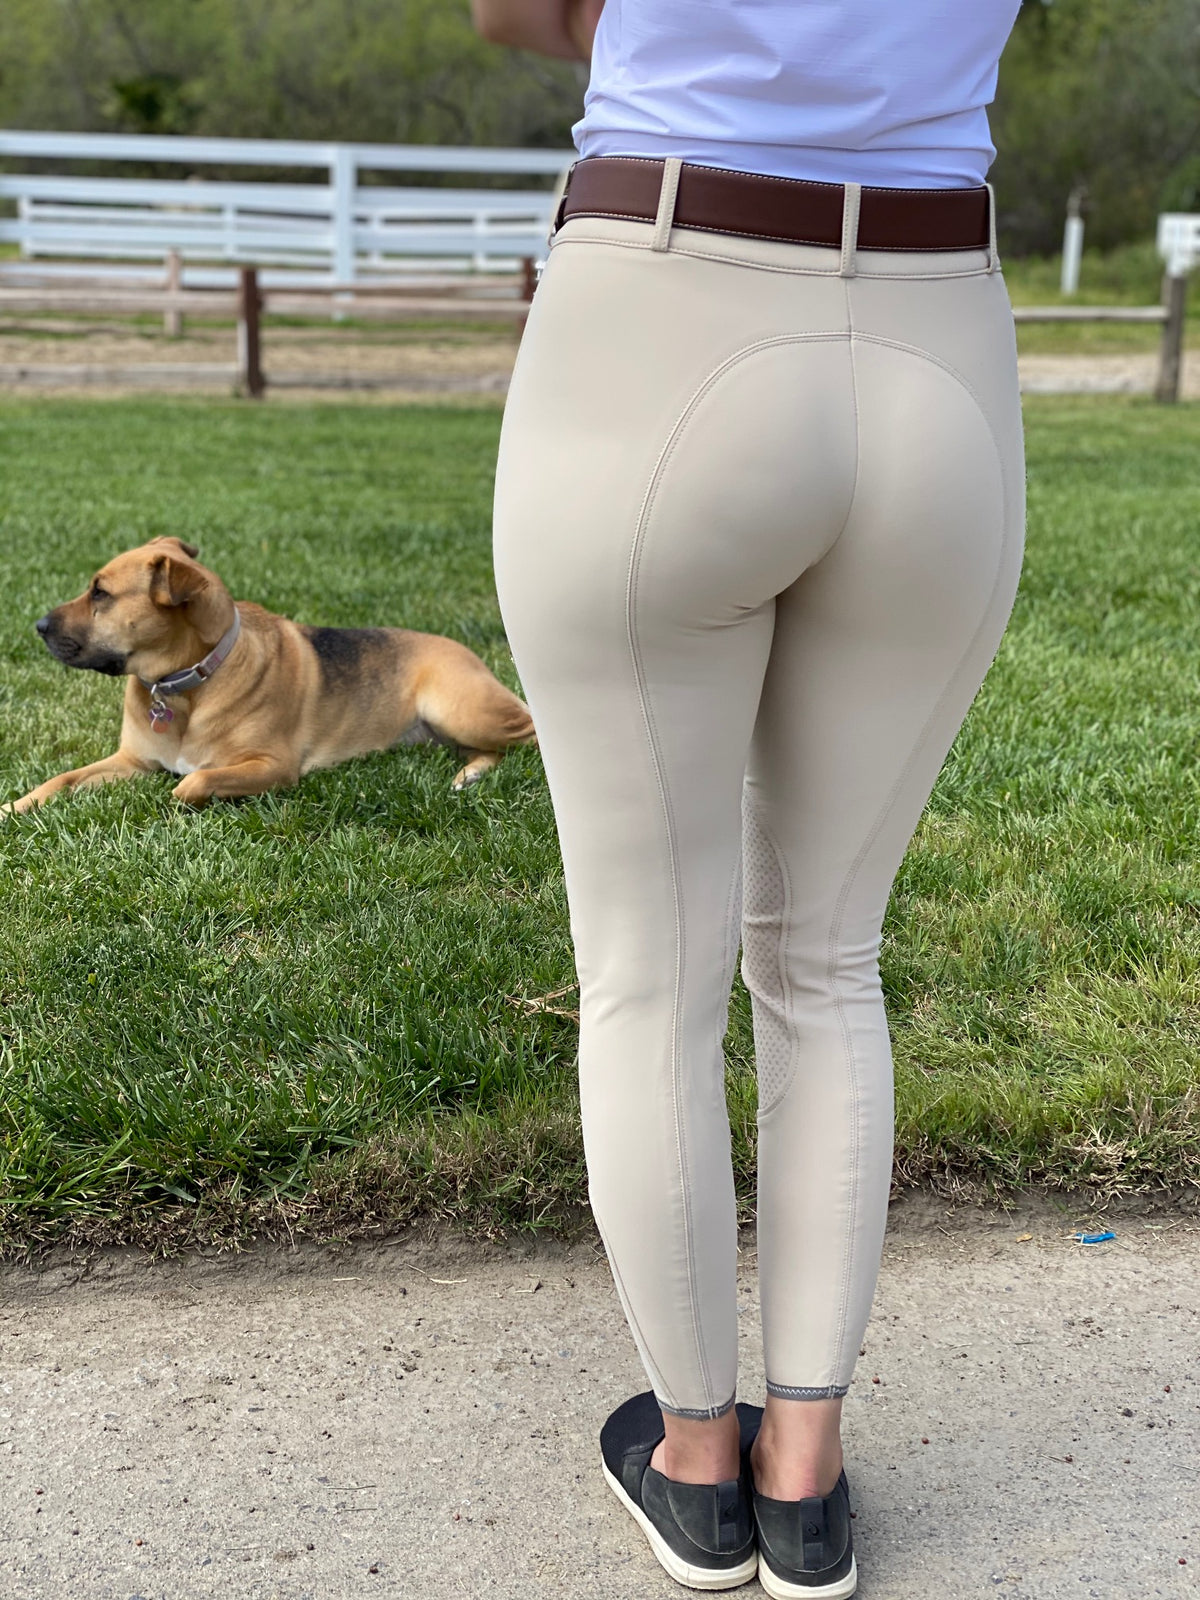 The NEW Pikeur Ciara Grip breeches are a NEW version of their Ciara model with an amazing new fabric by Scholler, you'll really love this addition!